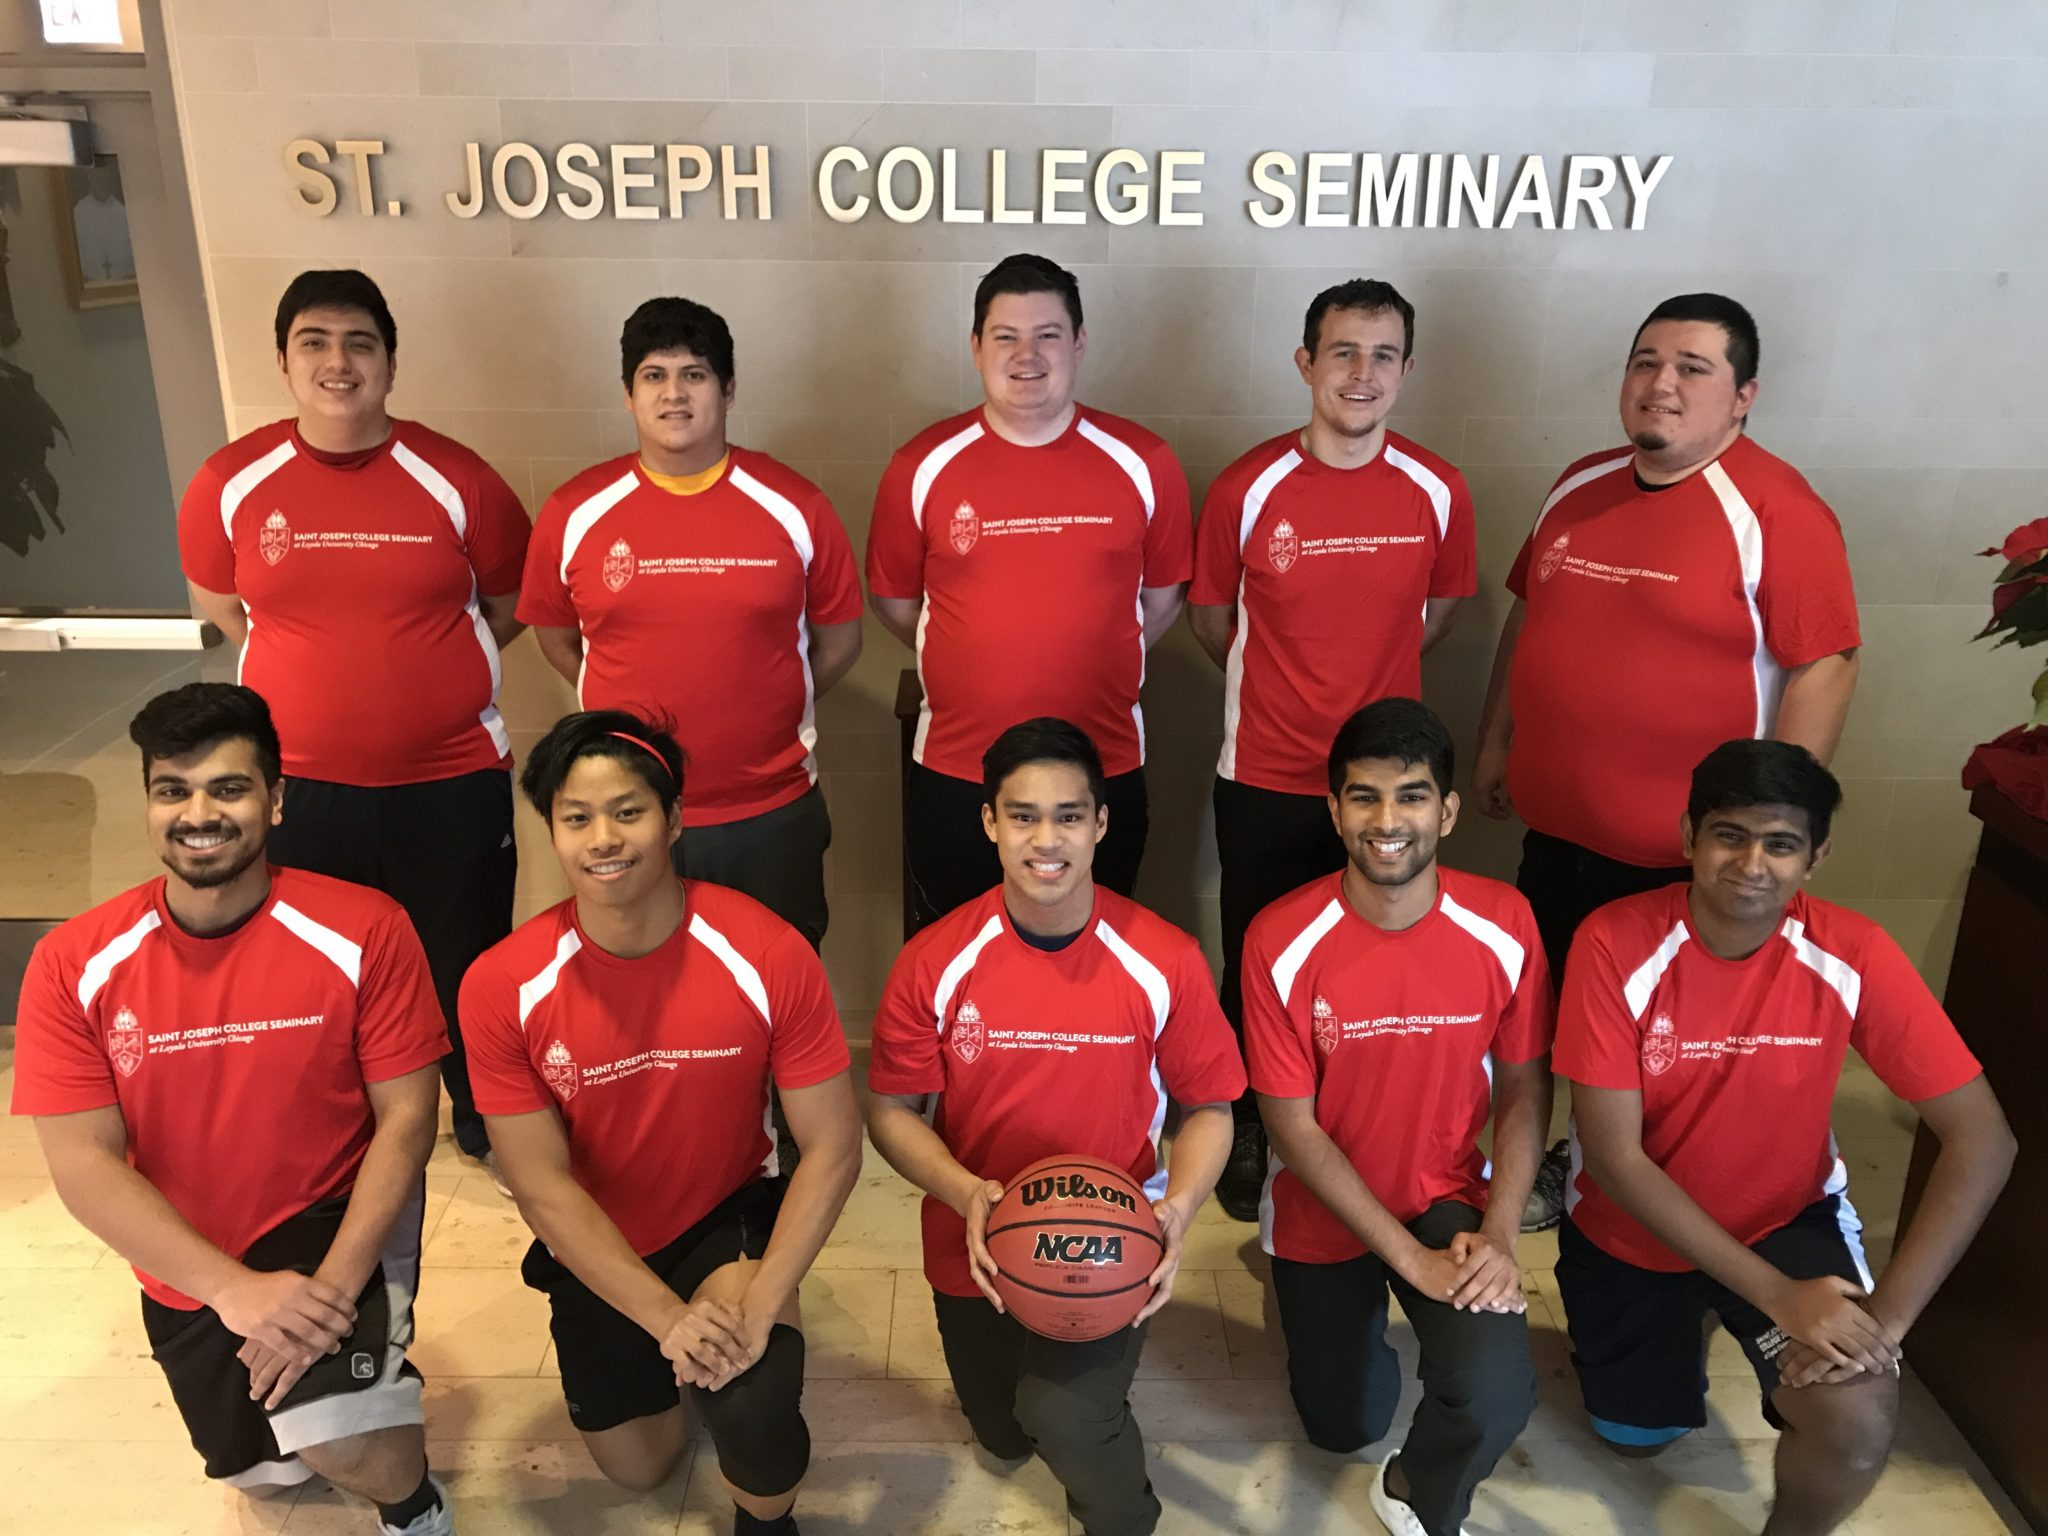 Pictured above: the St. Joseph College Seminary basketball team